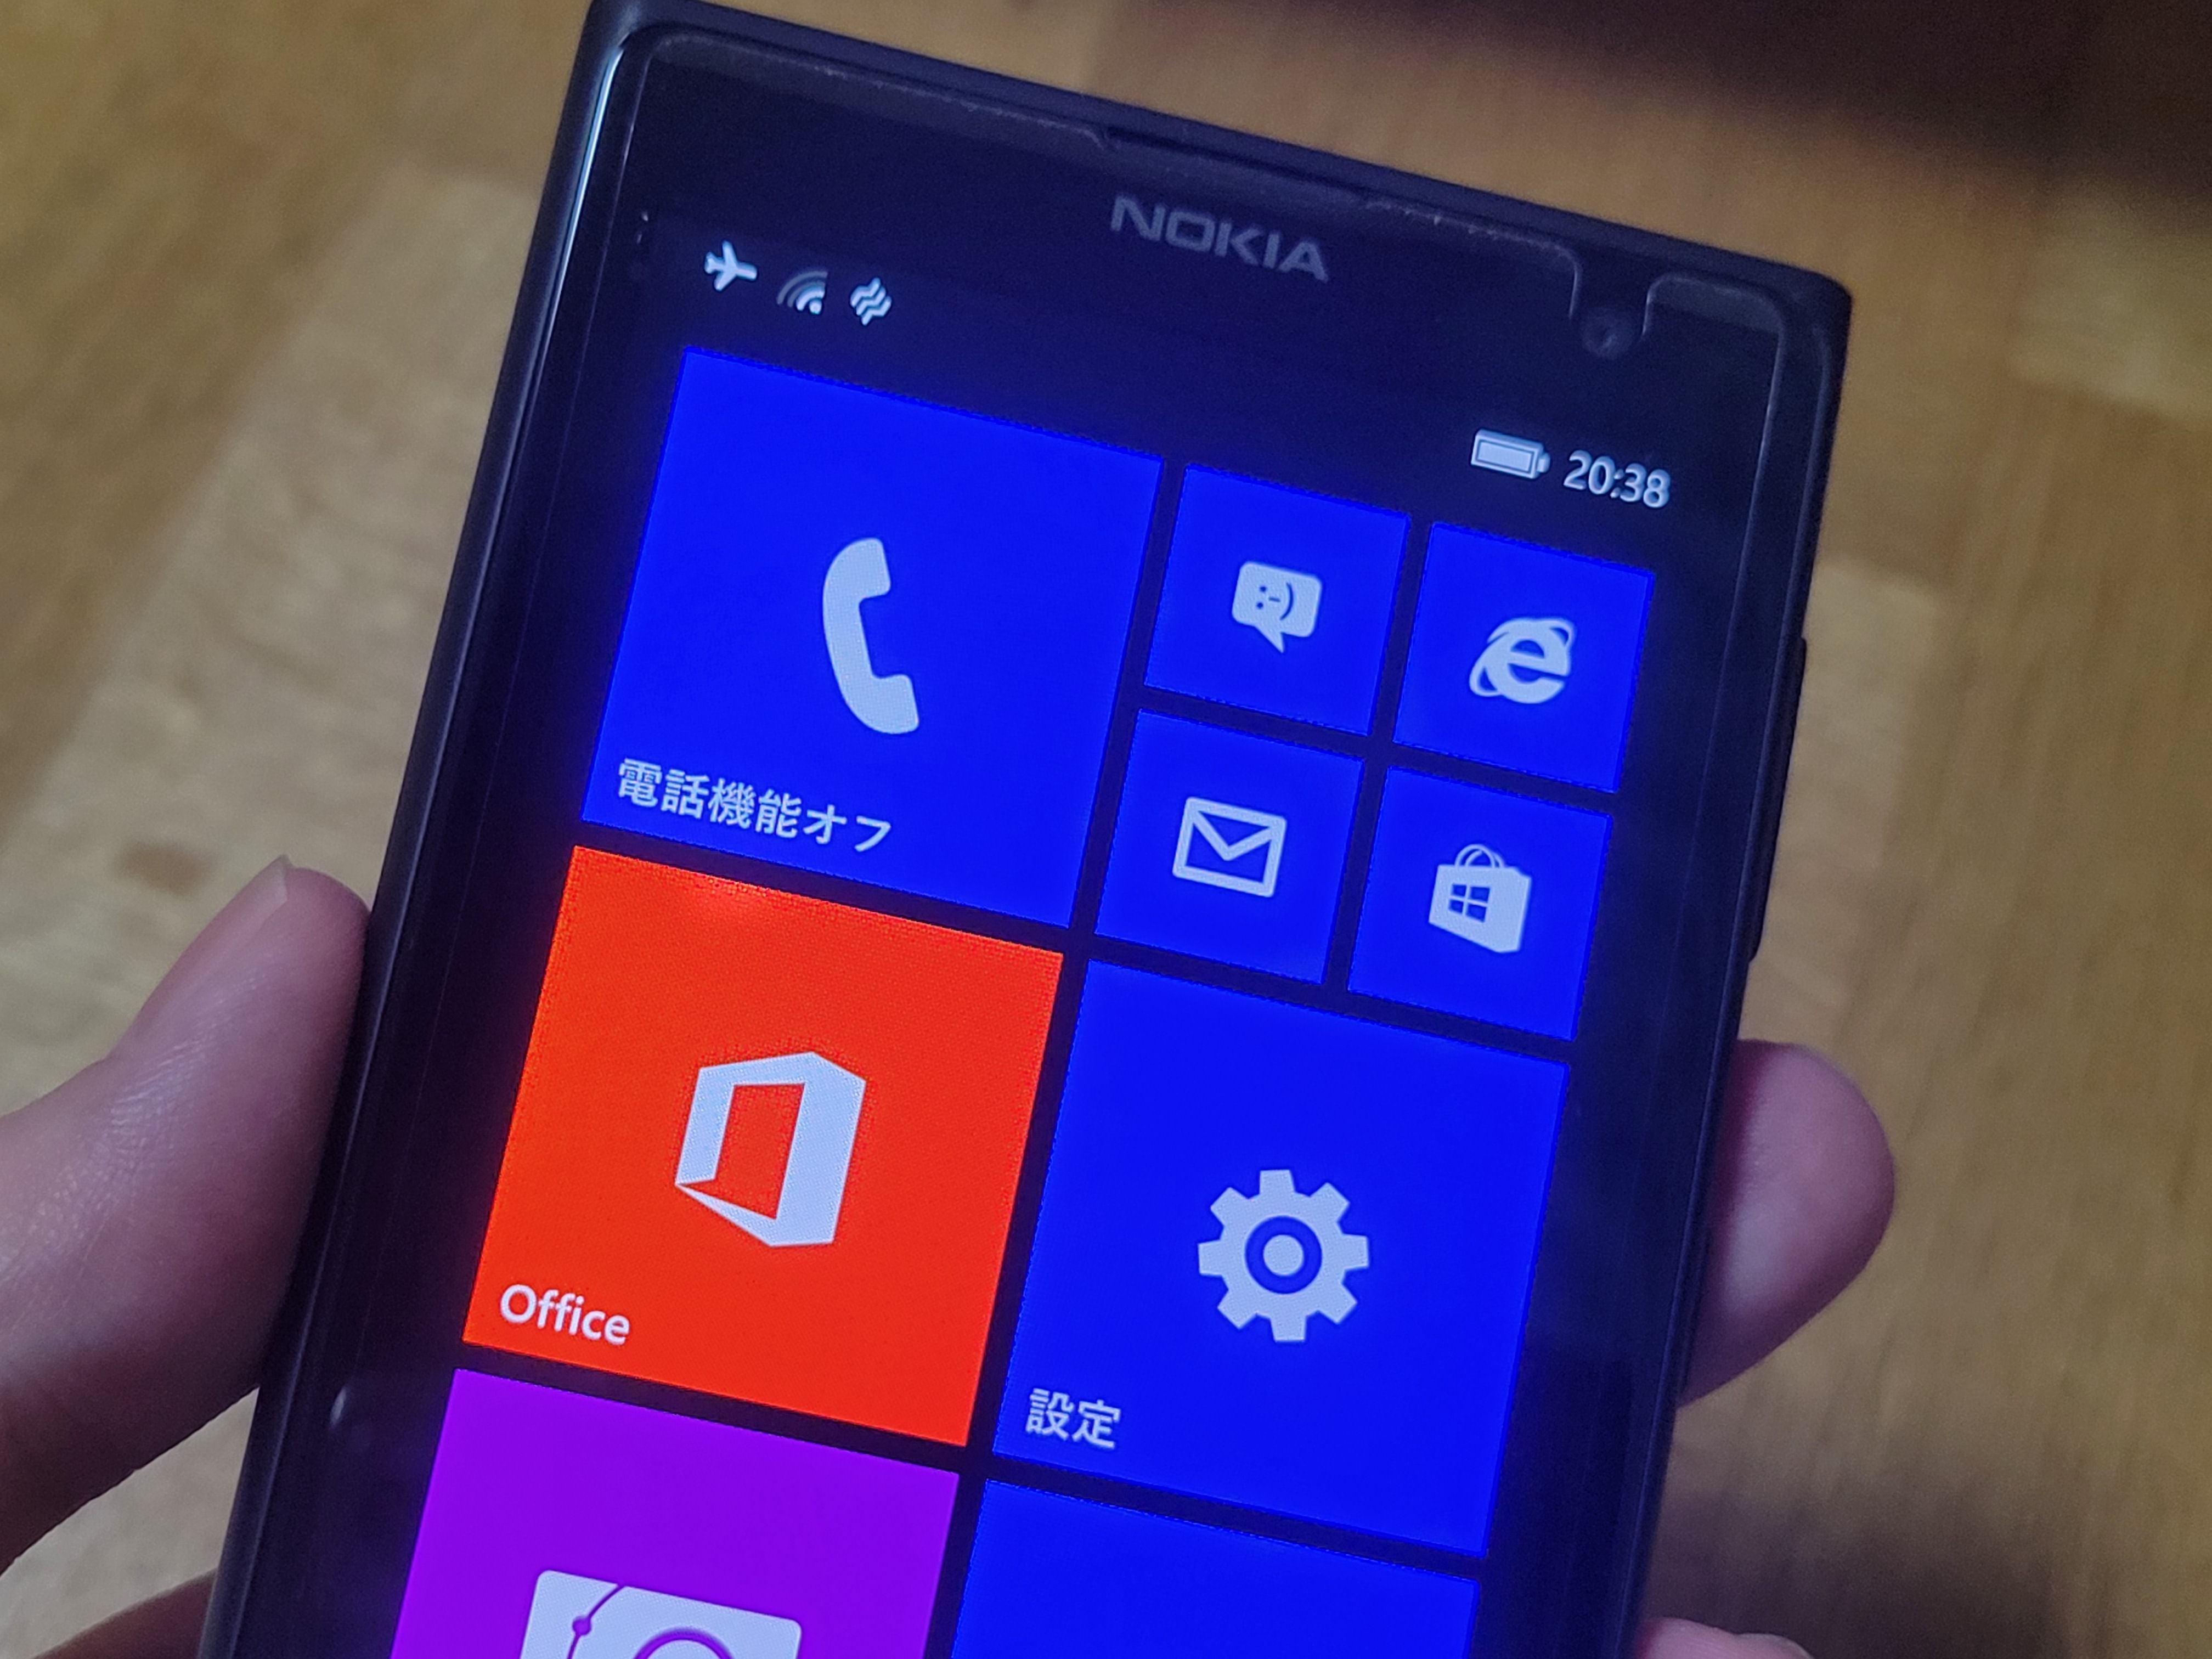 Windows Phone 8.1 in 2021 - Can't do anything